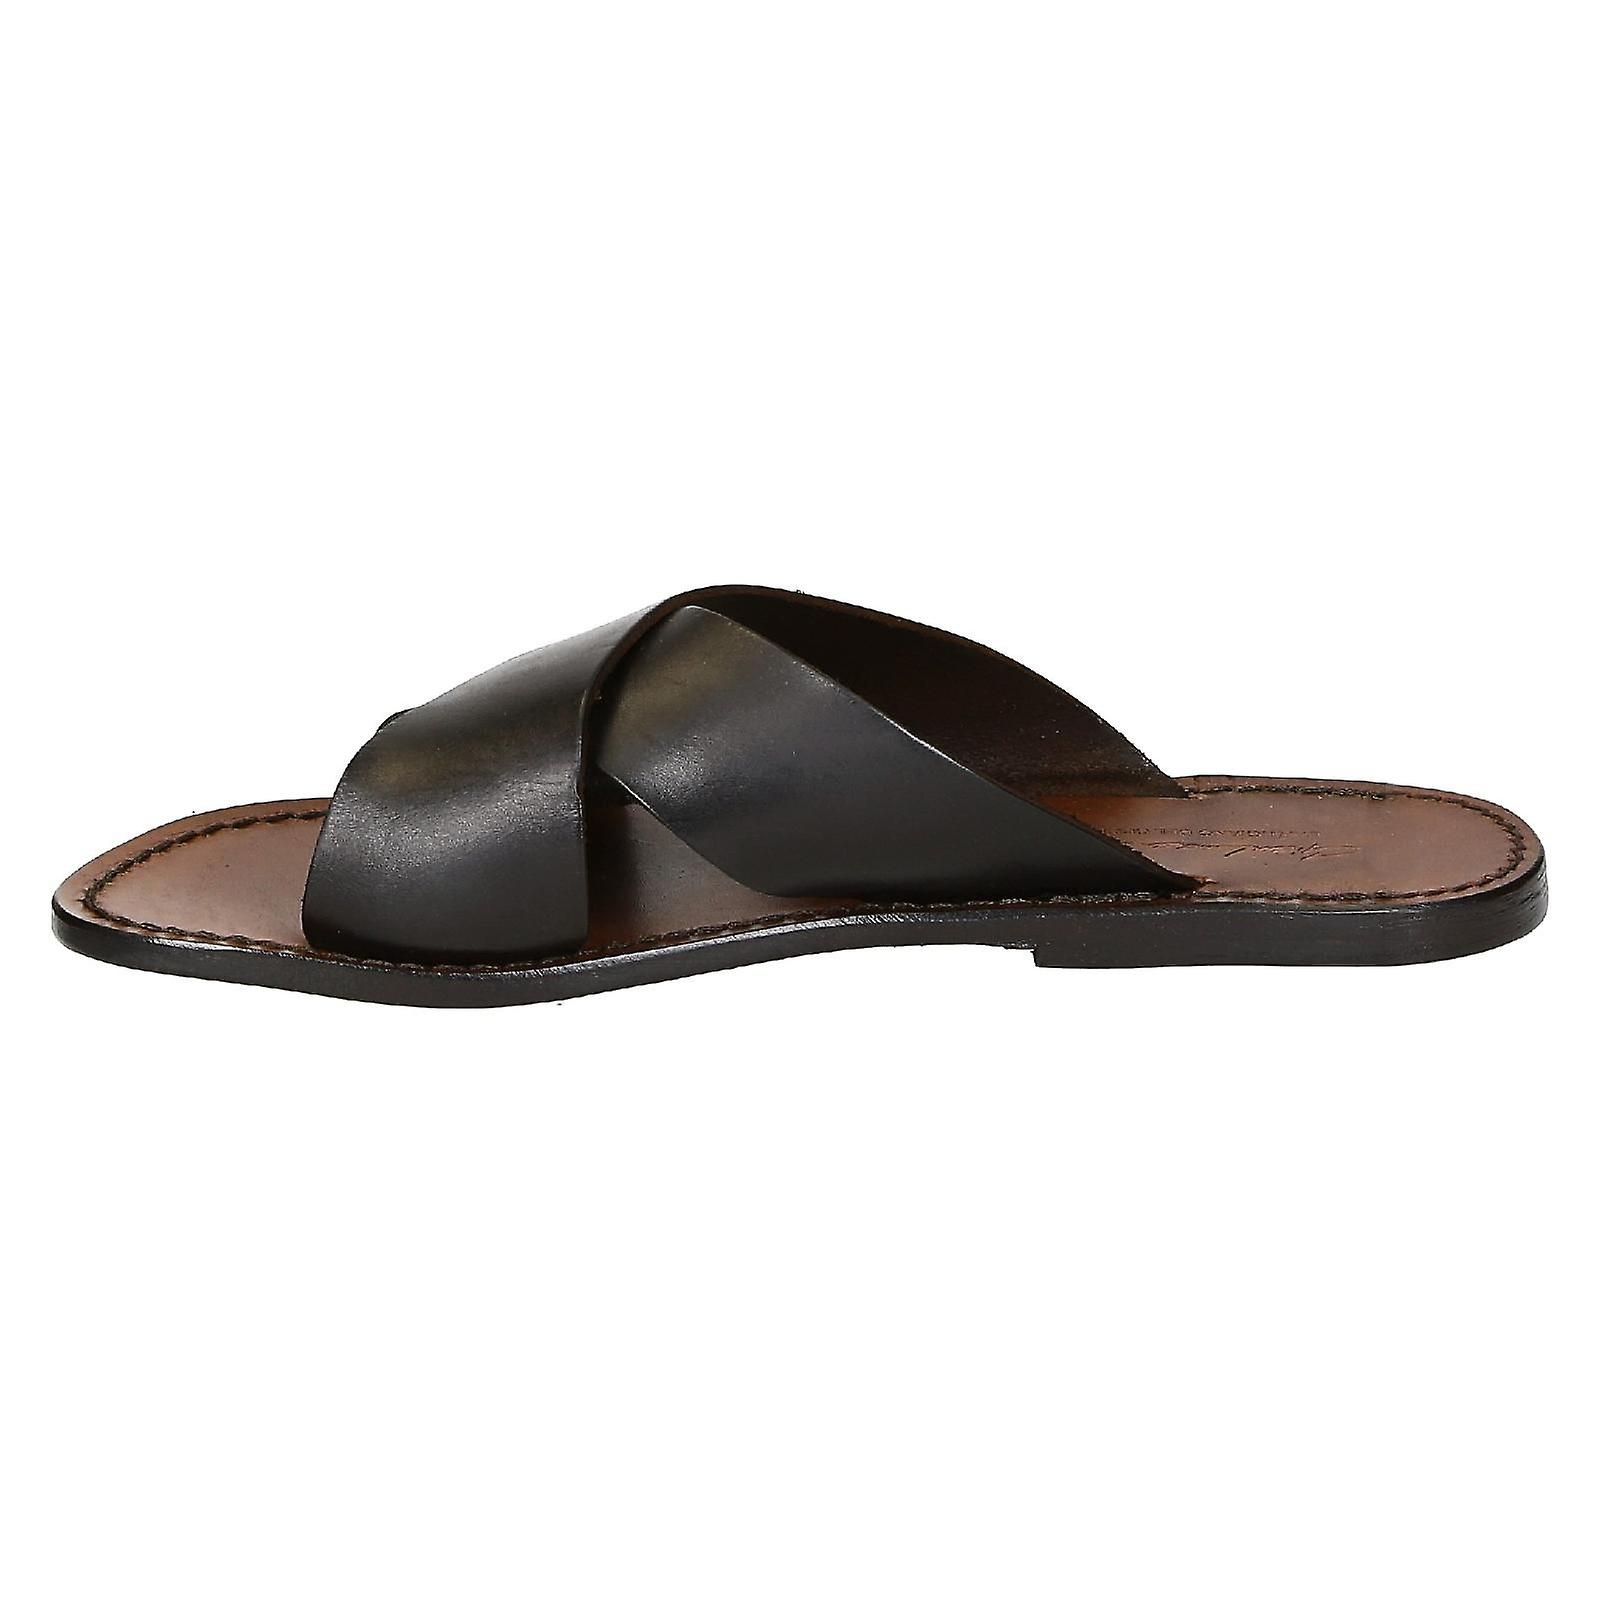 12d573238c13 Mens leather slippers handmade in Italy in dark brown leather